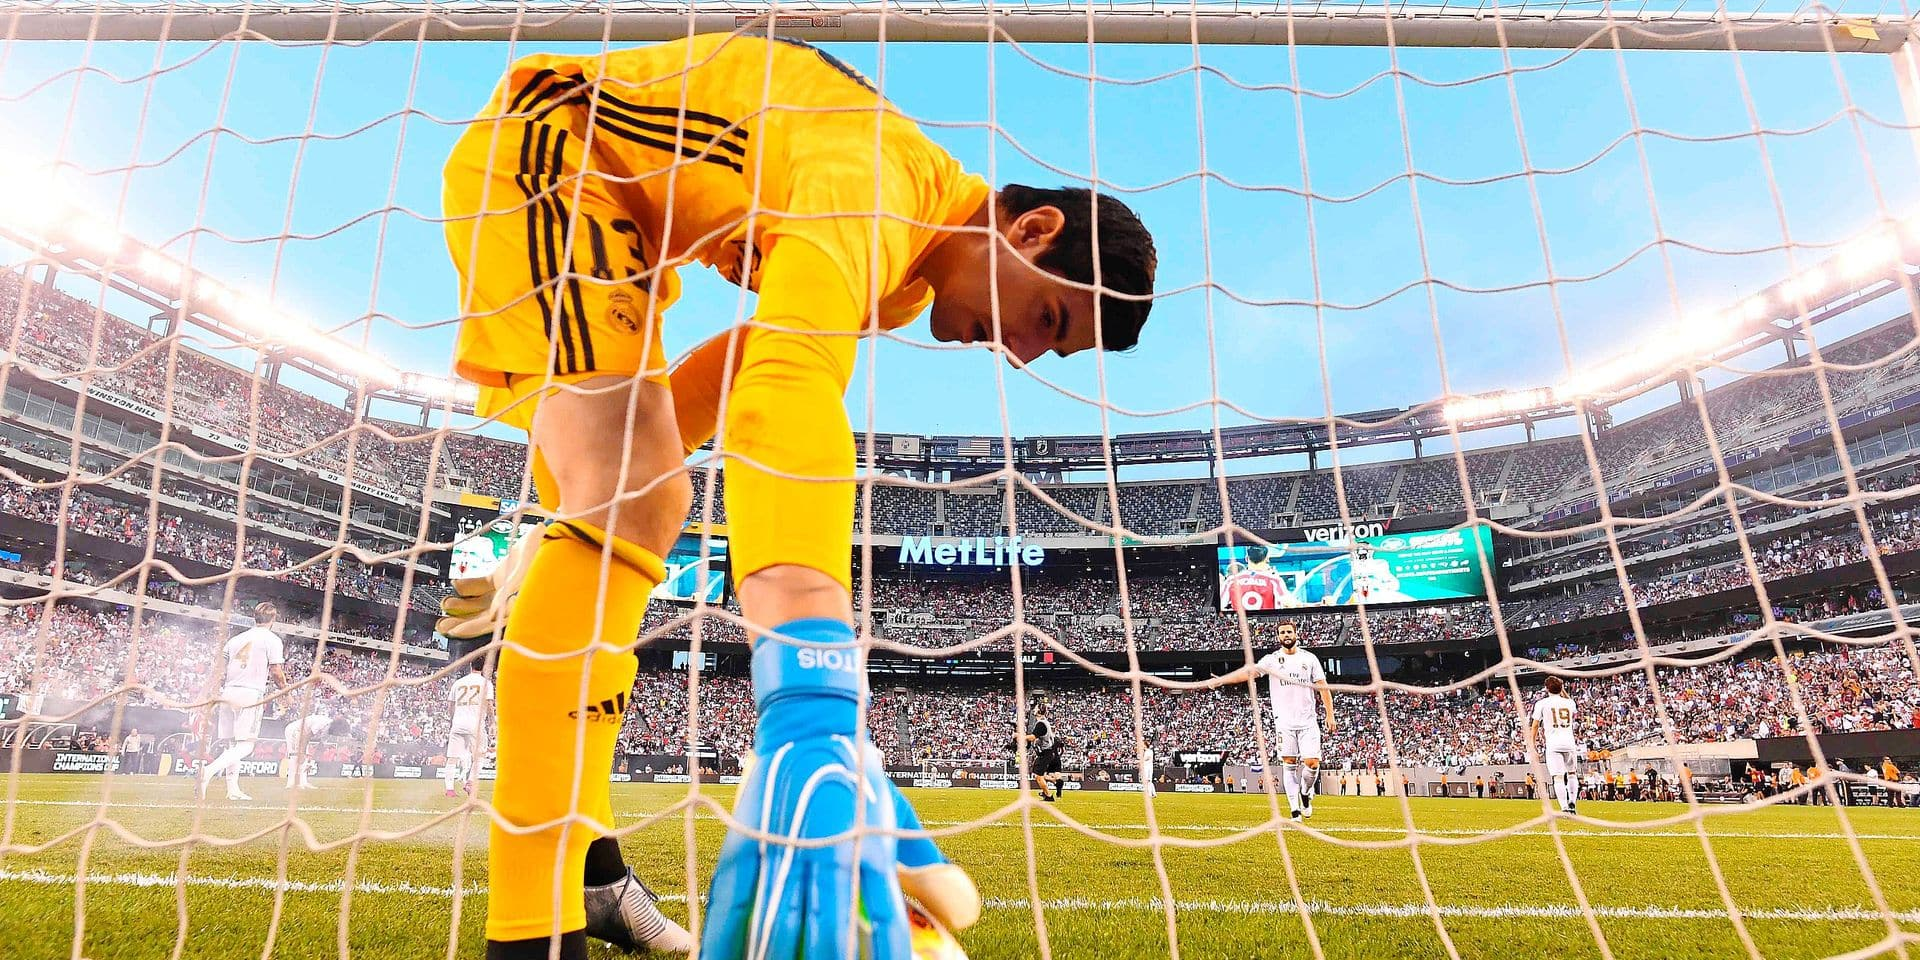 Real Madrid's Belgian goalkeeper Thibaut Courtois takes the ball after failing to save a goal during the 2019 International Champions Cup football match between Real Madrid and Atletico Madrid at the Metlife Stadium Arena in East Rutherford, New Jersey on July 26, 2019. (Photo by Johannes EISELE / AFP)